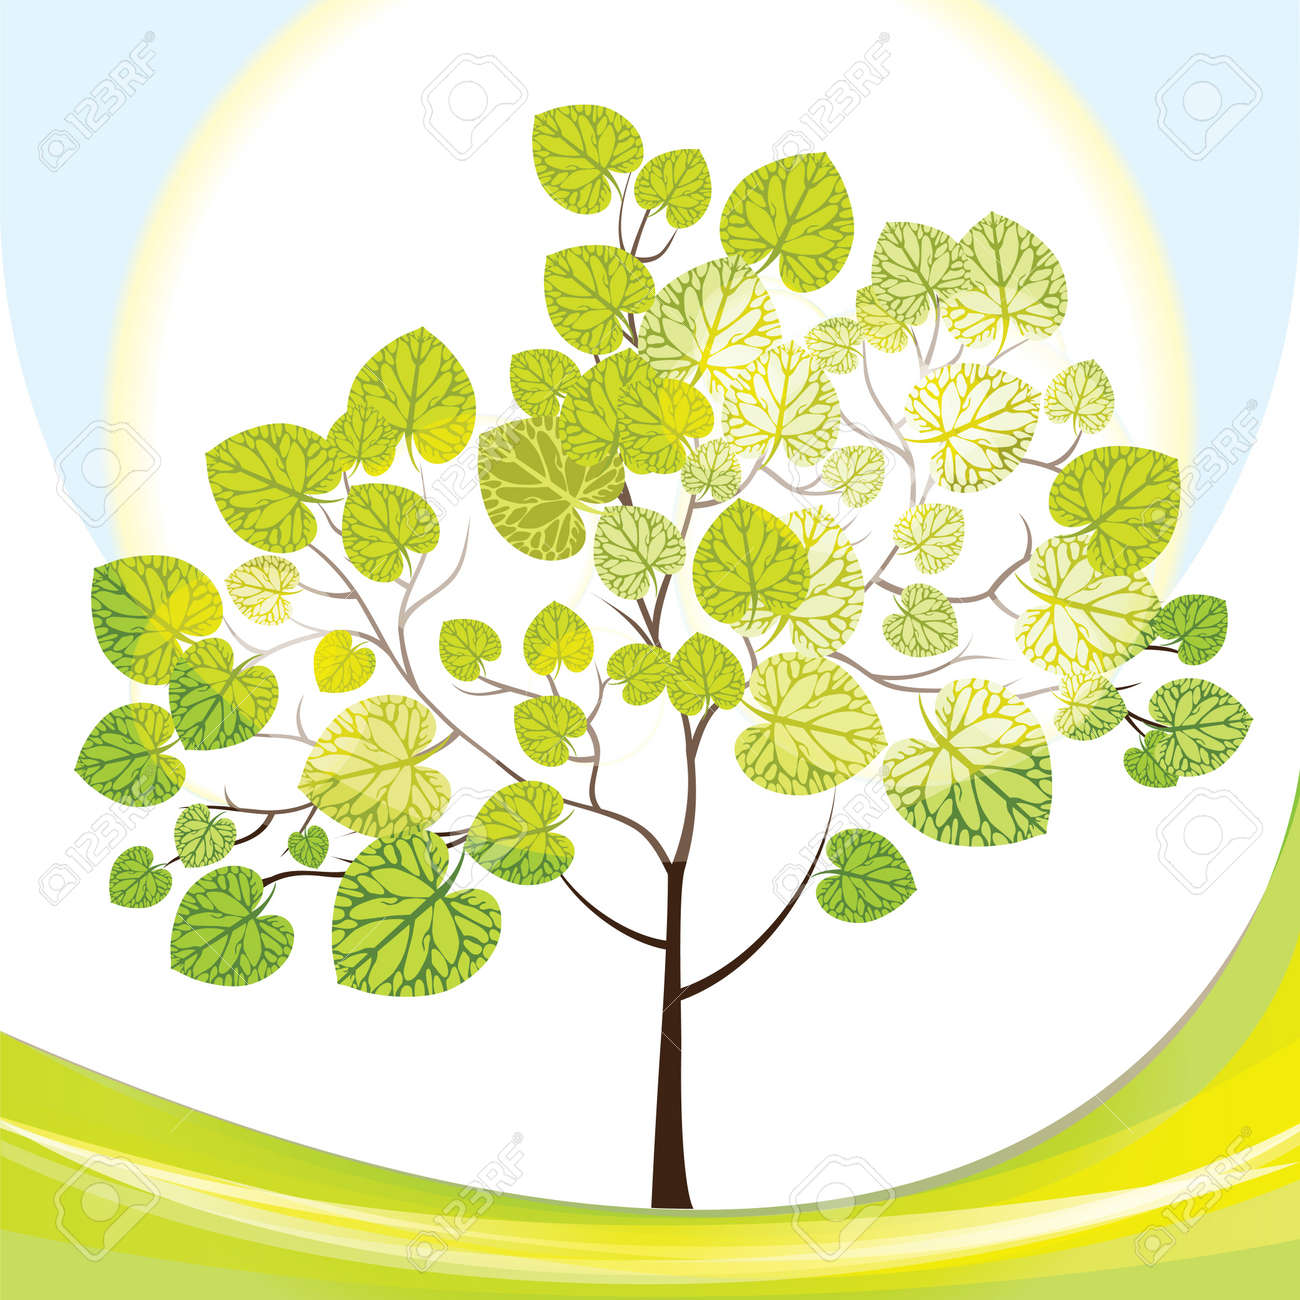 tree with green leaves - 15866813